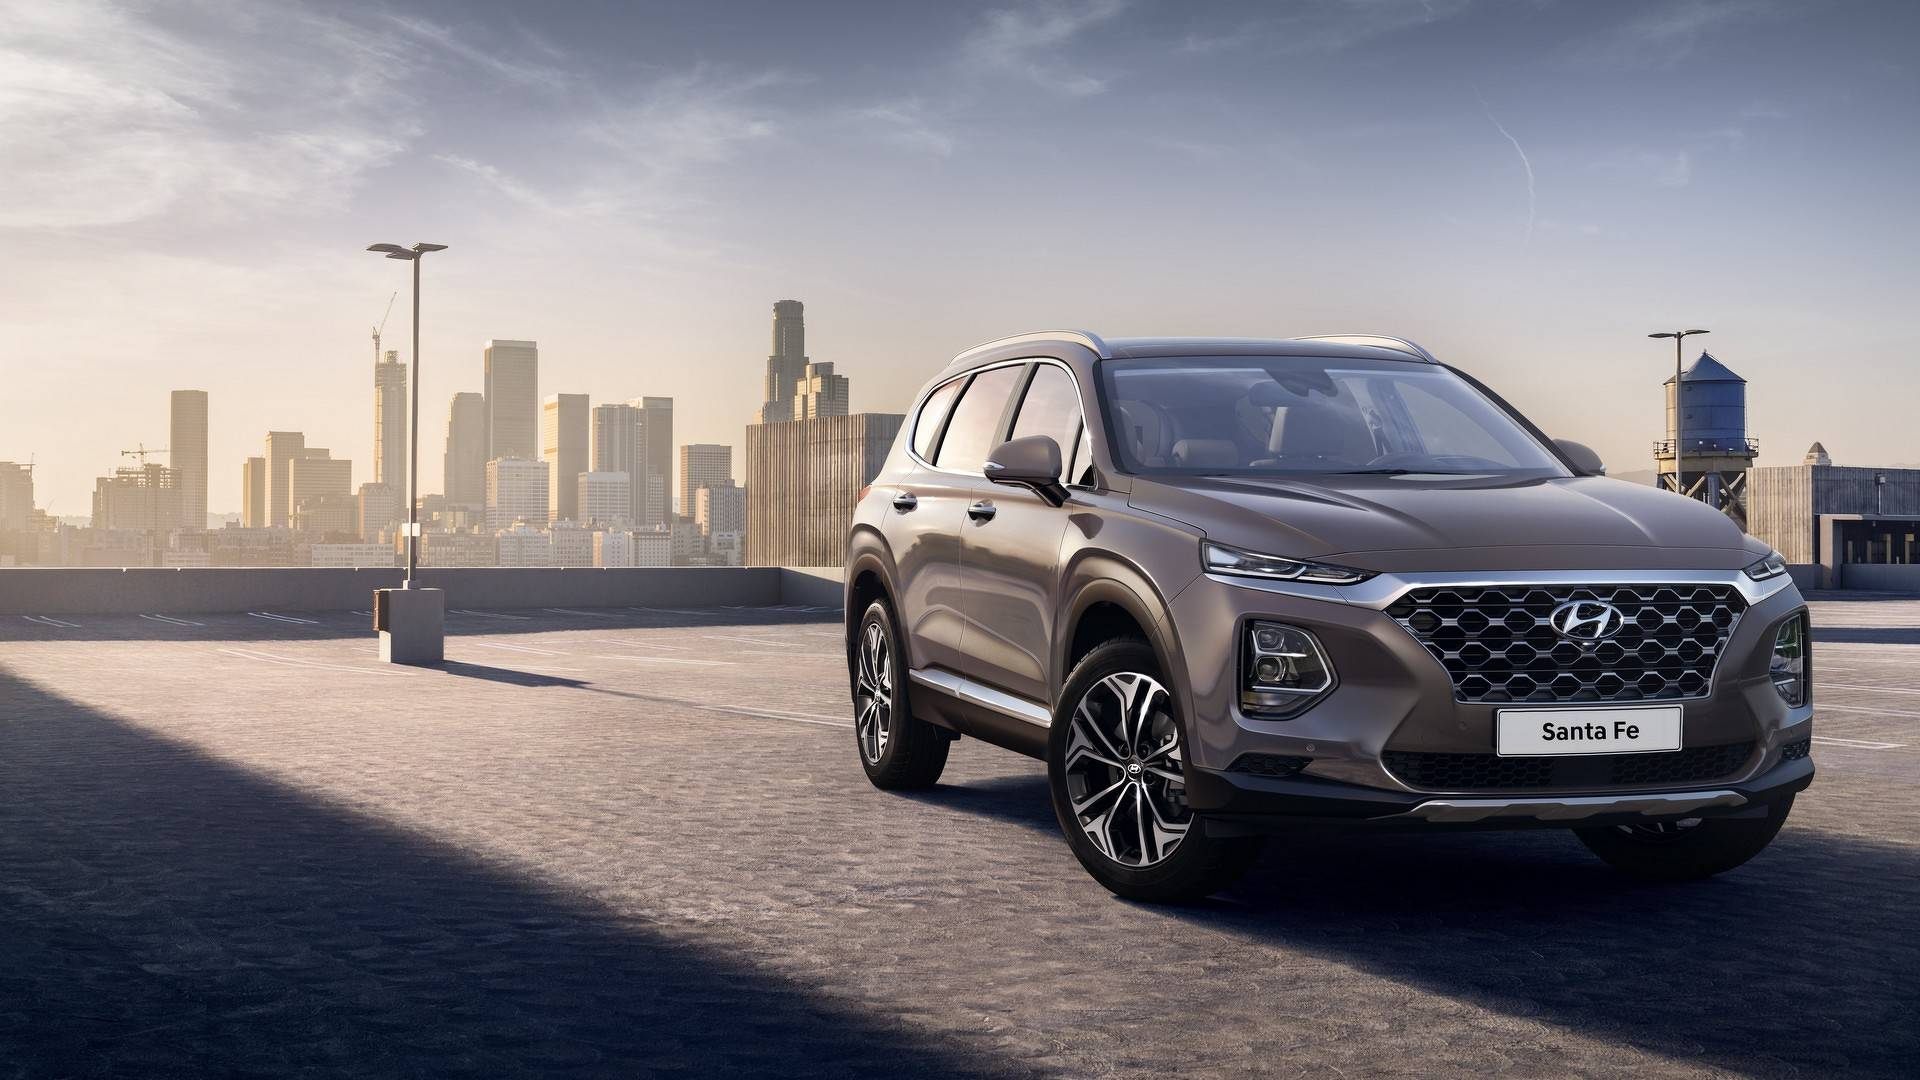 Hyundai has posted online another video centered on its fourth-generation Santa Fe crossover SUV